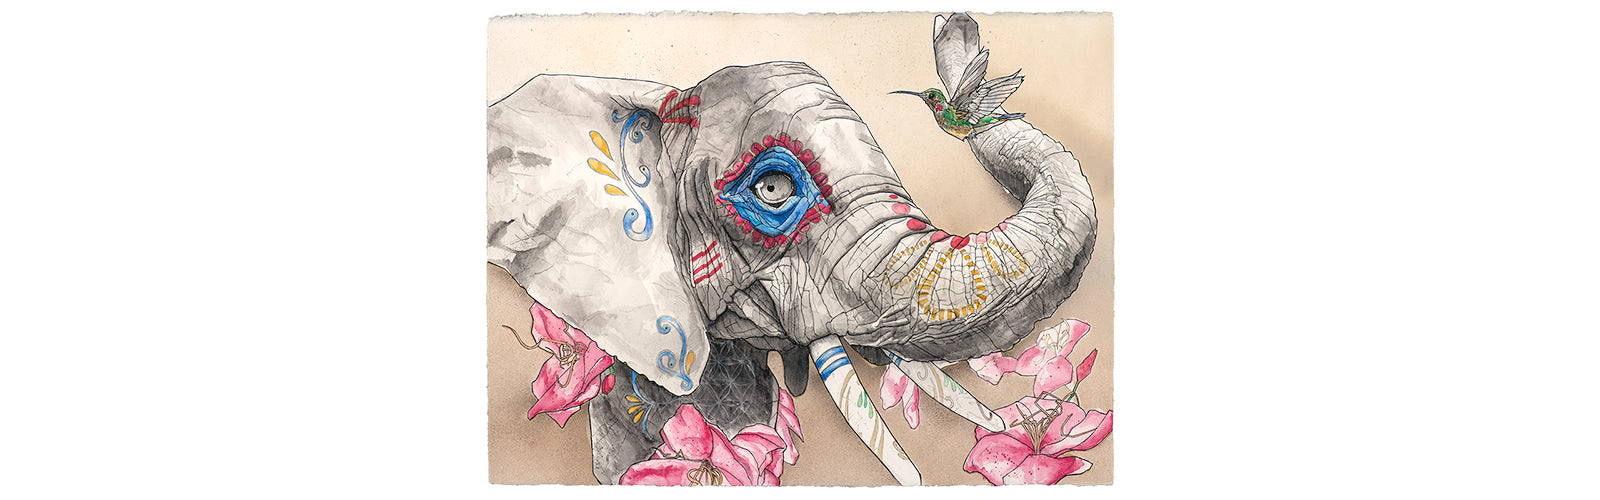 Representing strength, family, and community; stable and wise, elephants remember their dead and maintain rituals. Even their young learn to mourn ancestors they never personally met. Hummingbirds have been known to show up in the spirit of lost loved one